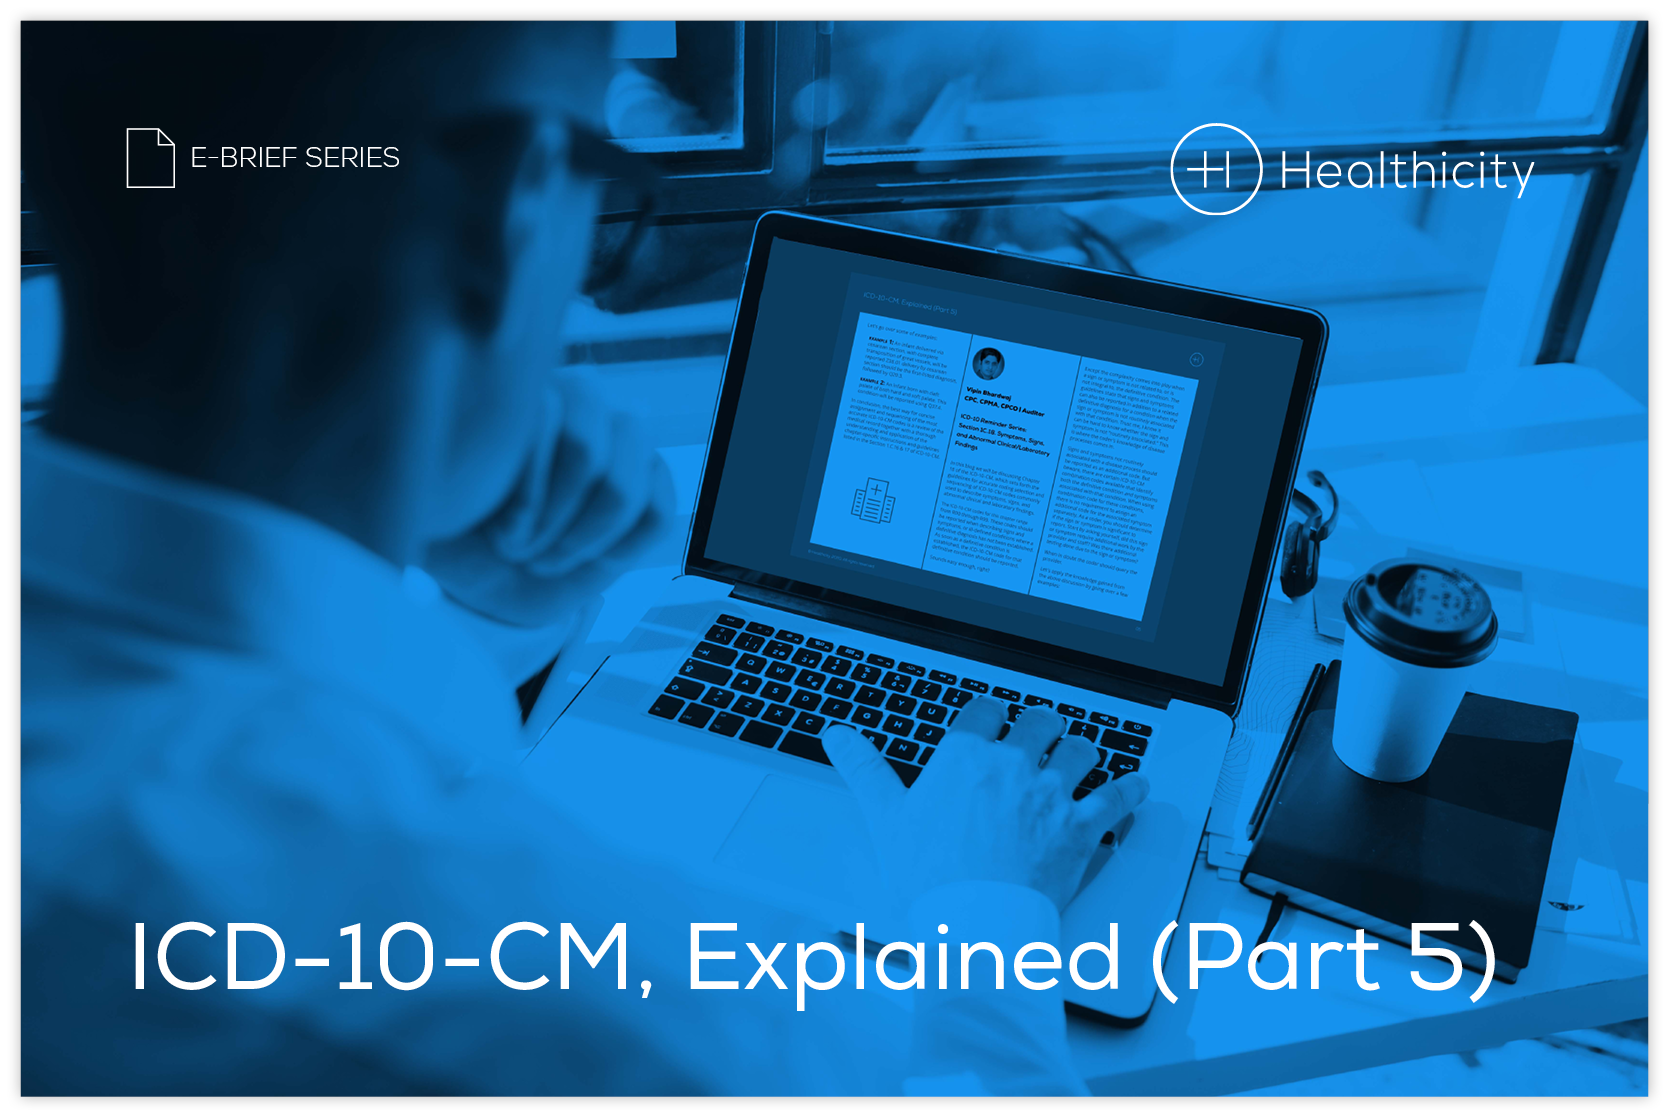 Download the eBrief - Asset ICD-10-CM, Explained (Part 5)